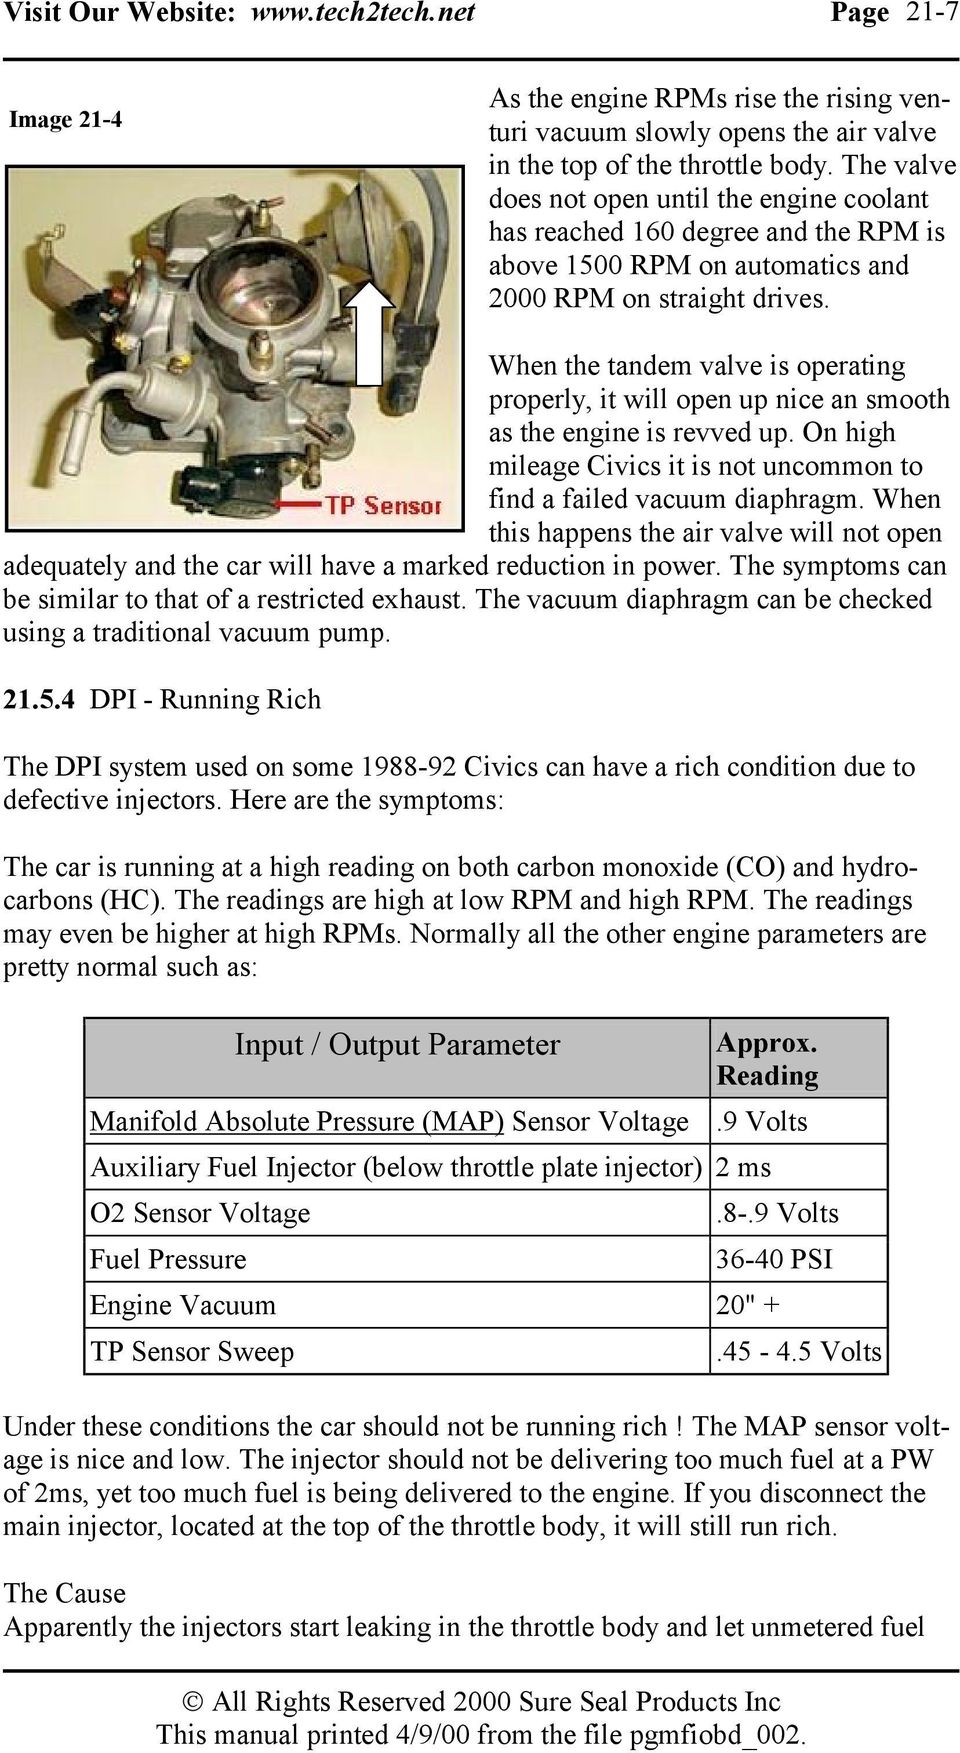 Module 21 Fuel Injectors Dual Point Injection Dpi Pdf Oxygen Sensor Circuit Http Enginecodescom Articles Oxygensensor When The Tandem Valve Is Operating Properly It Will Open Up Nice An Smooth As